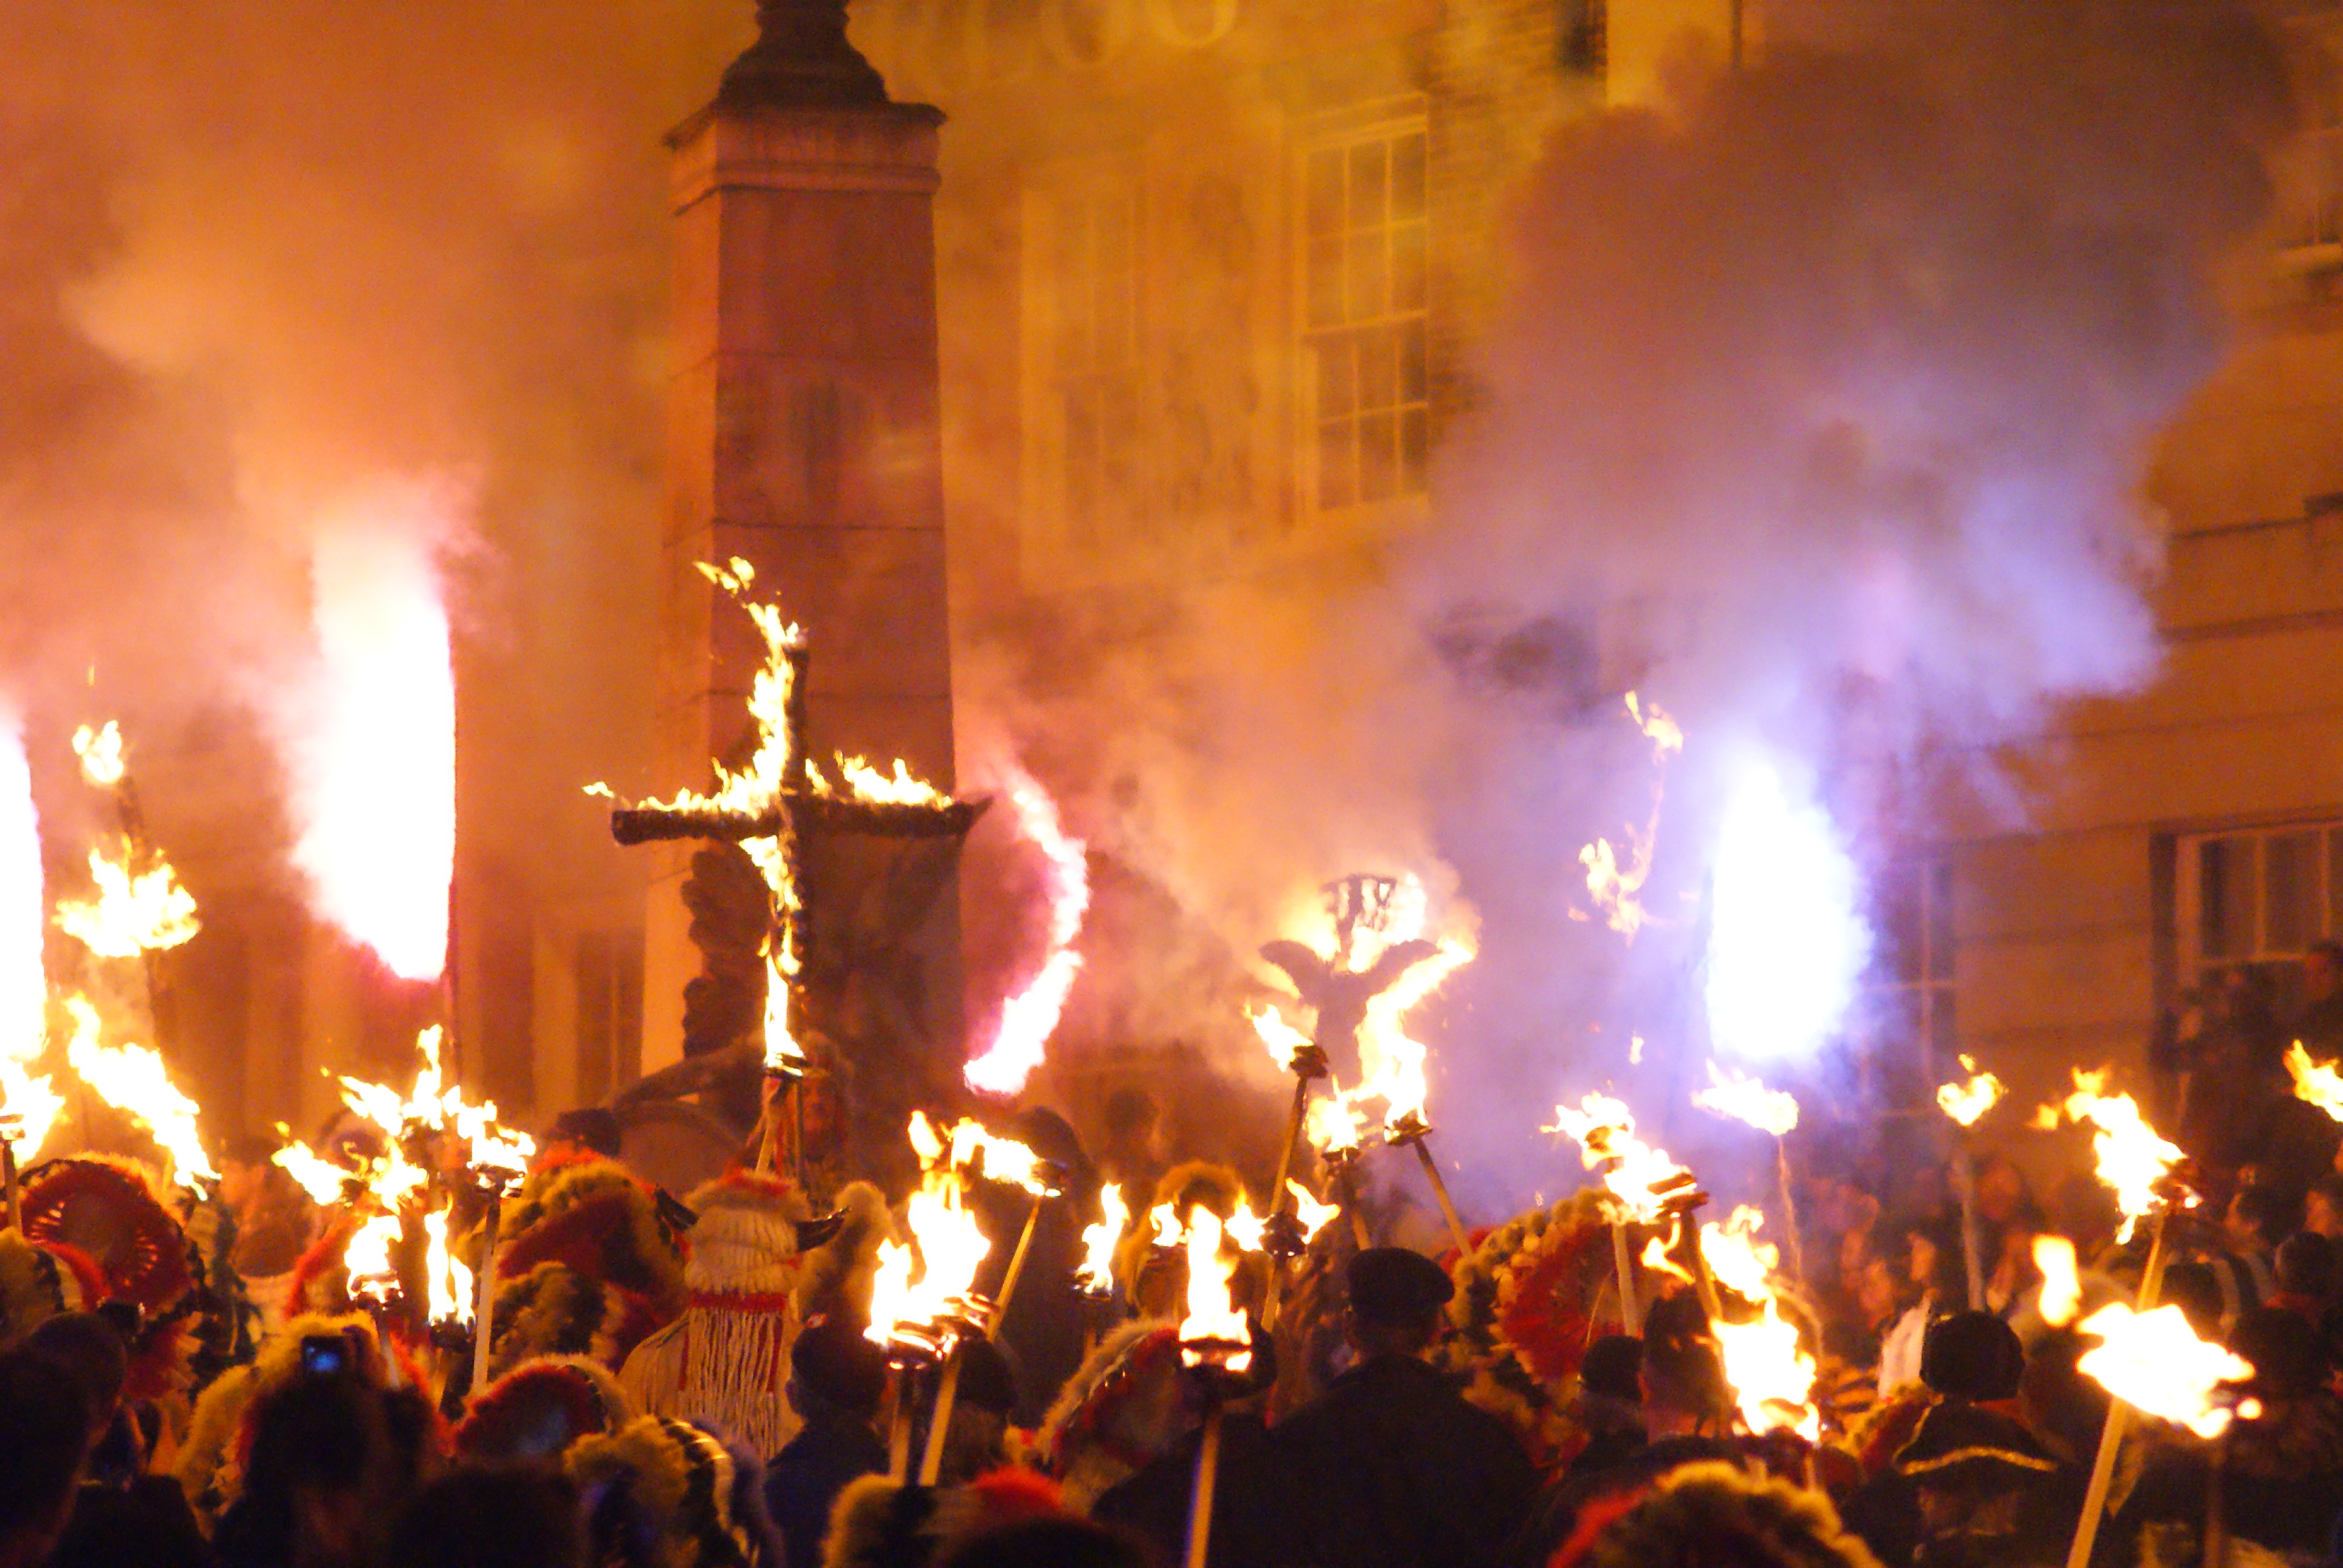 Guy Fawkes Night in the UK